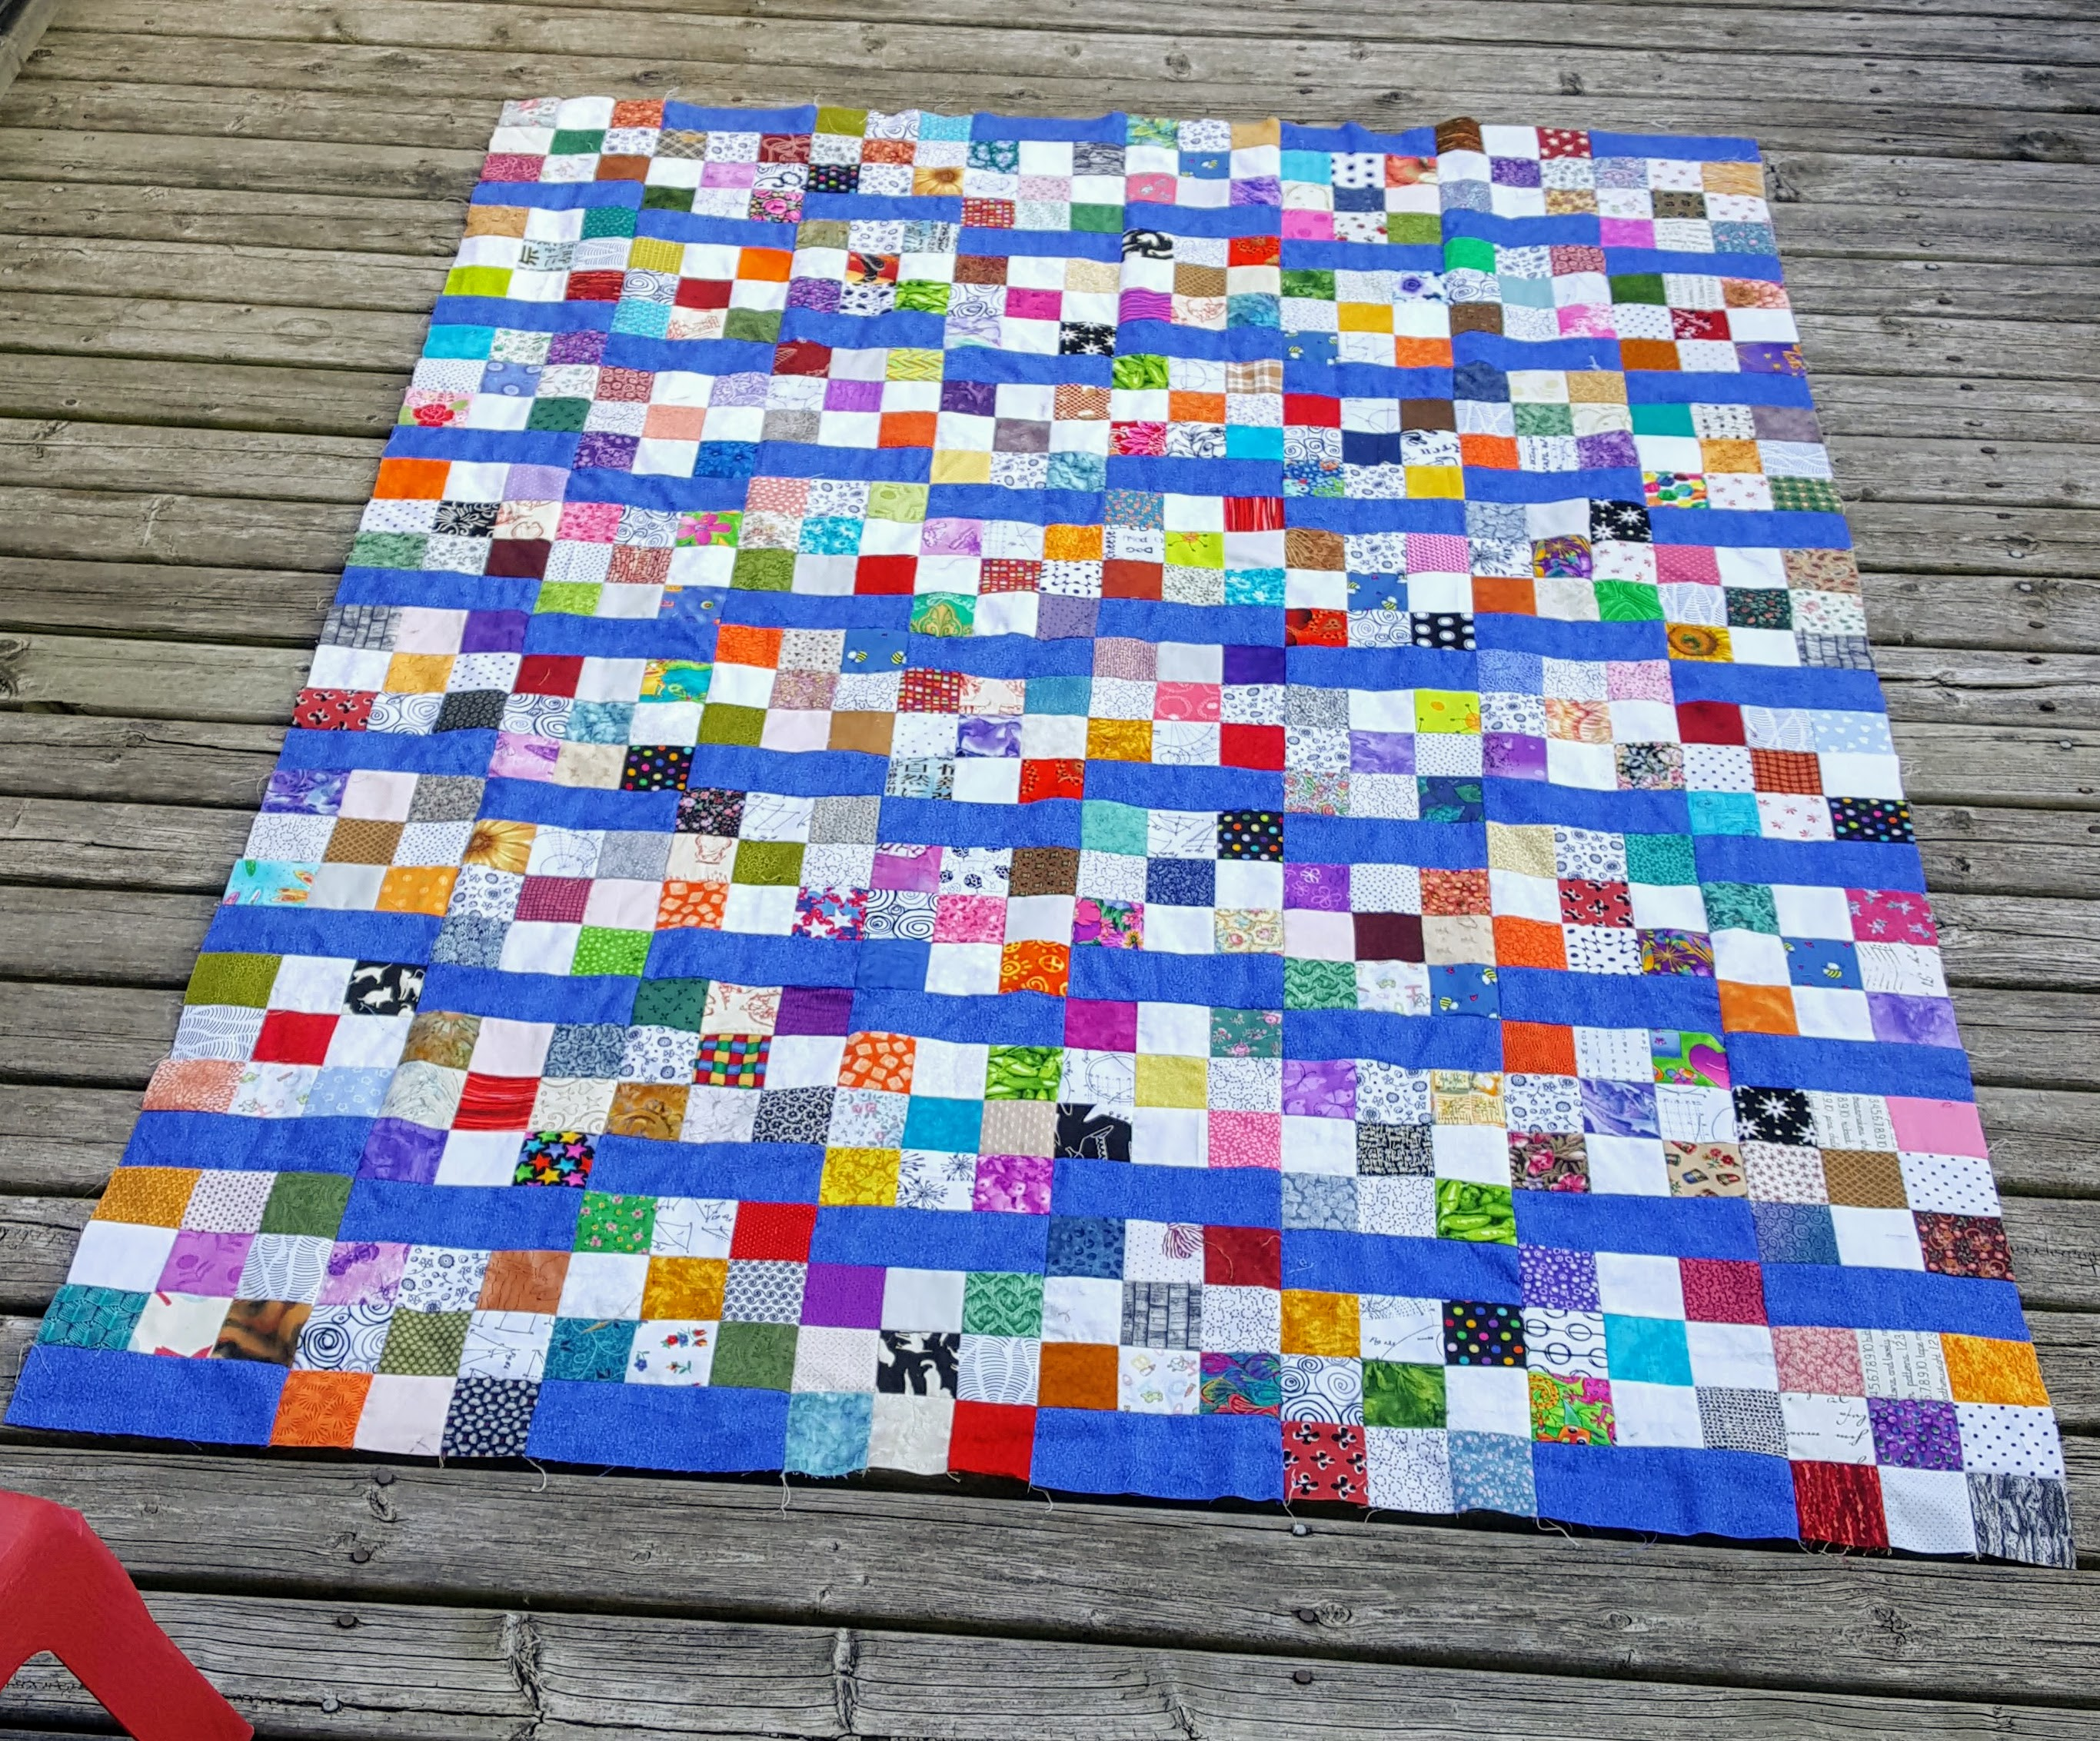 uneven 9 patch quilt top with broken stripes